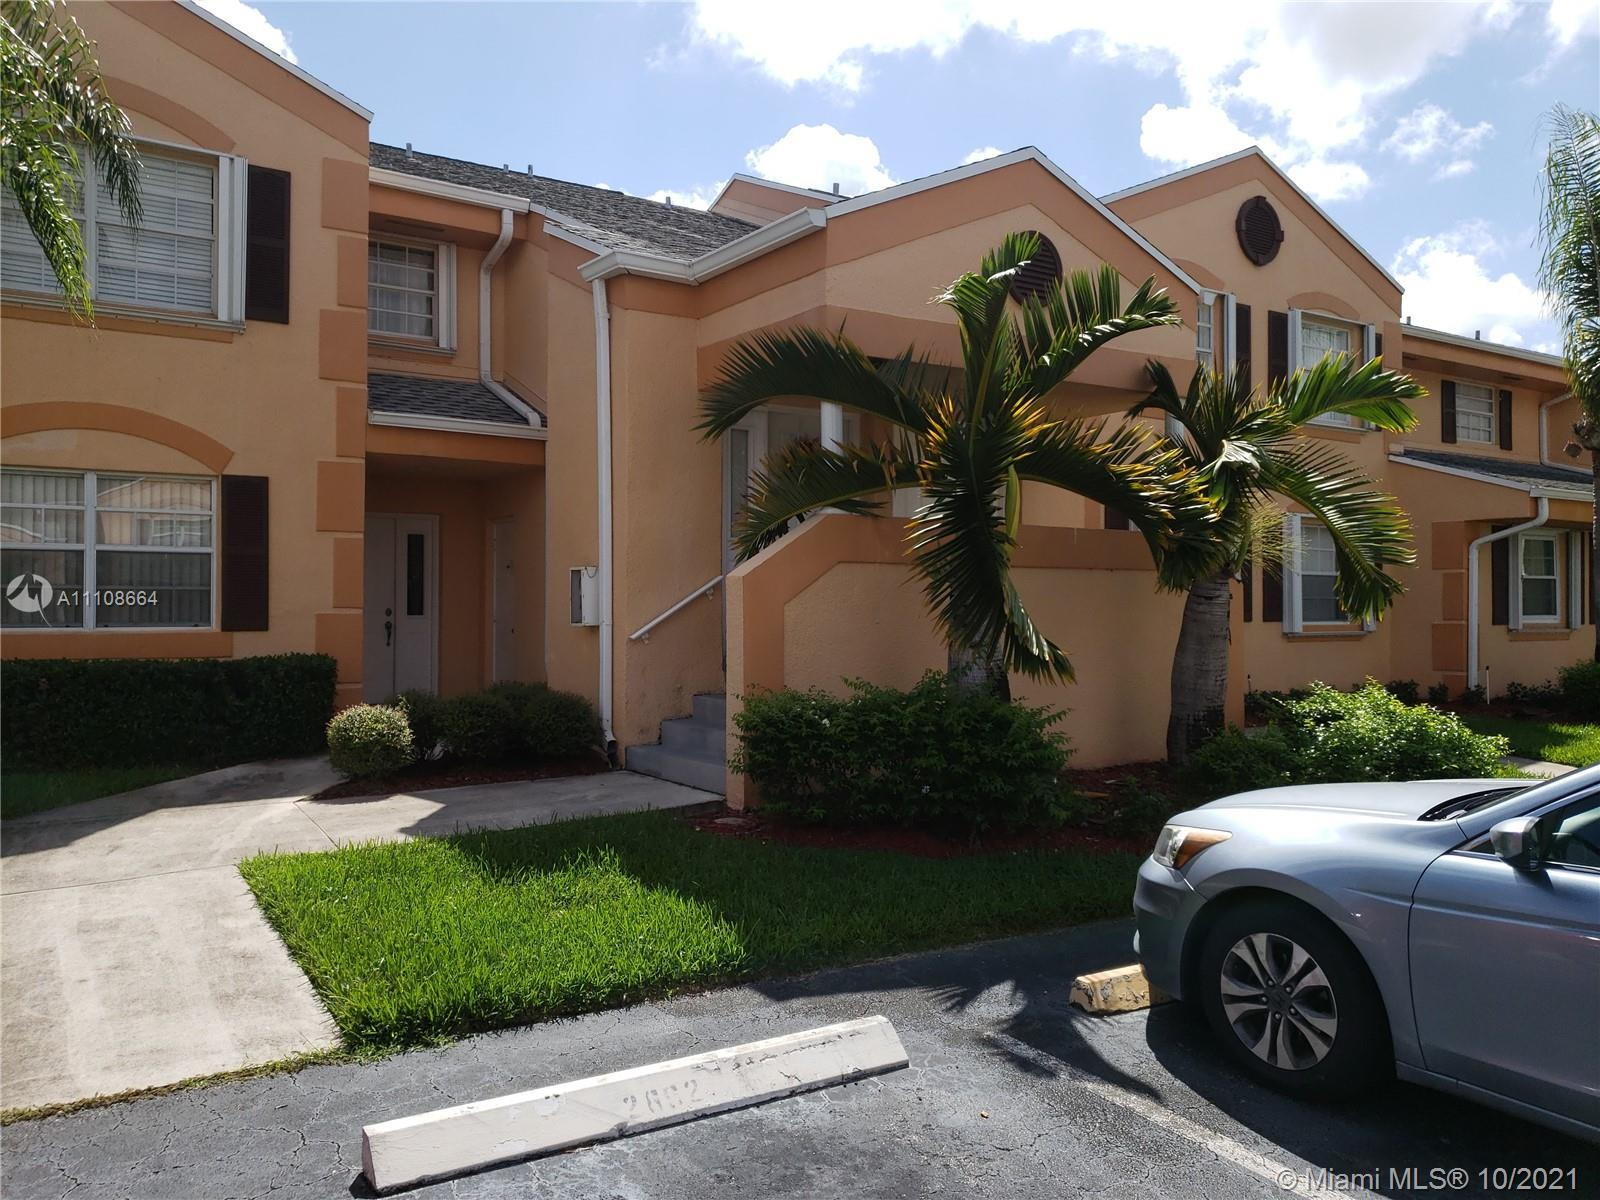 Undisclosed For Sale A11108664, FL